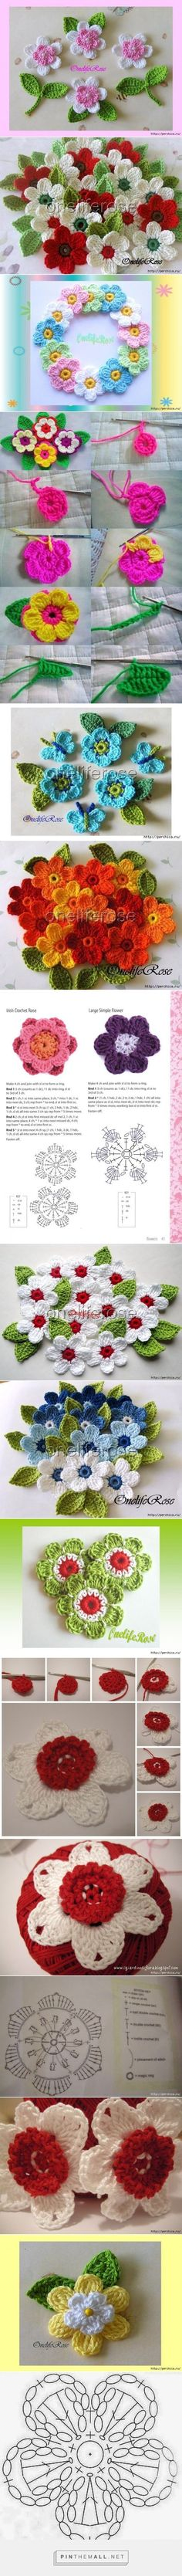 Flores de ganchillo Find and save knitting and crochet schemas simple recipes and other ideas collected with love Crochet Hearts Flower Crochet Crocheted Flower Crochet Wreath, Crochet Diy, Crochet Motifs, Crochet Flower Patterns, Crochet Squares, Love Crochet, Irish Crochet, Crochet Designs, Crochet Crafts